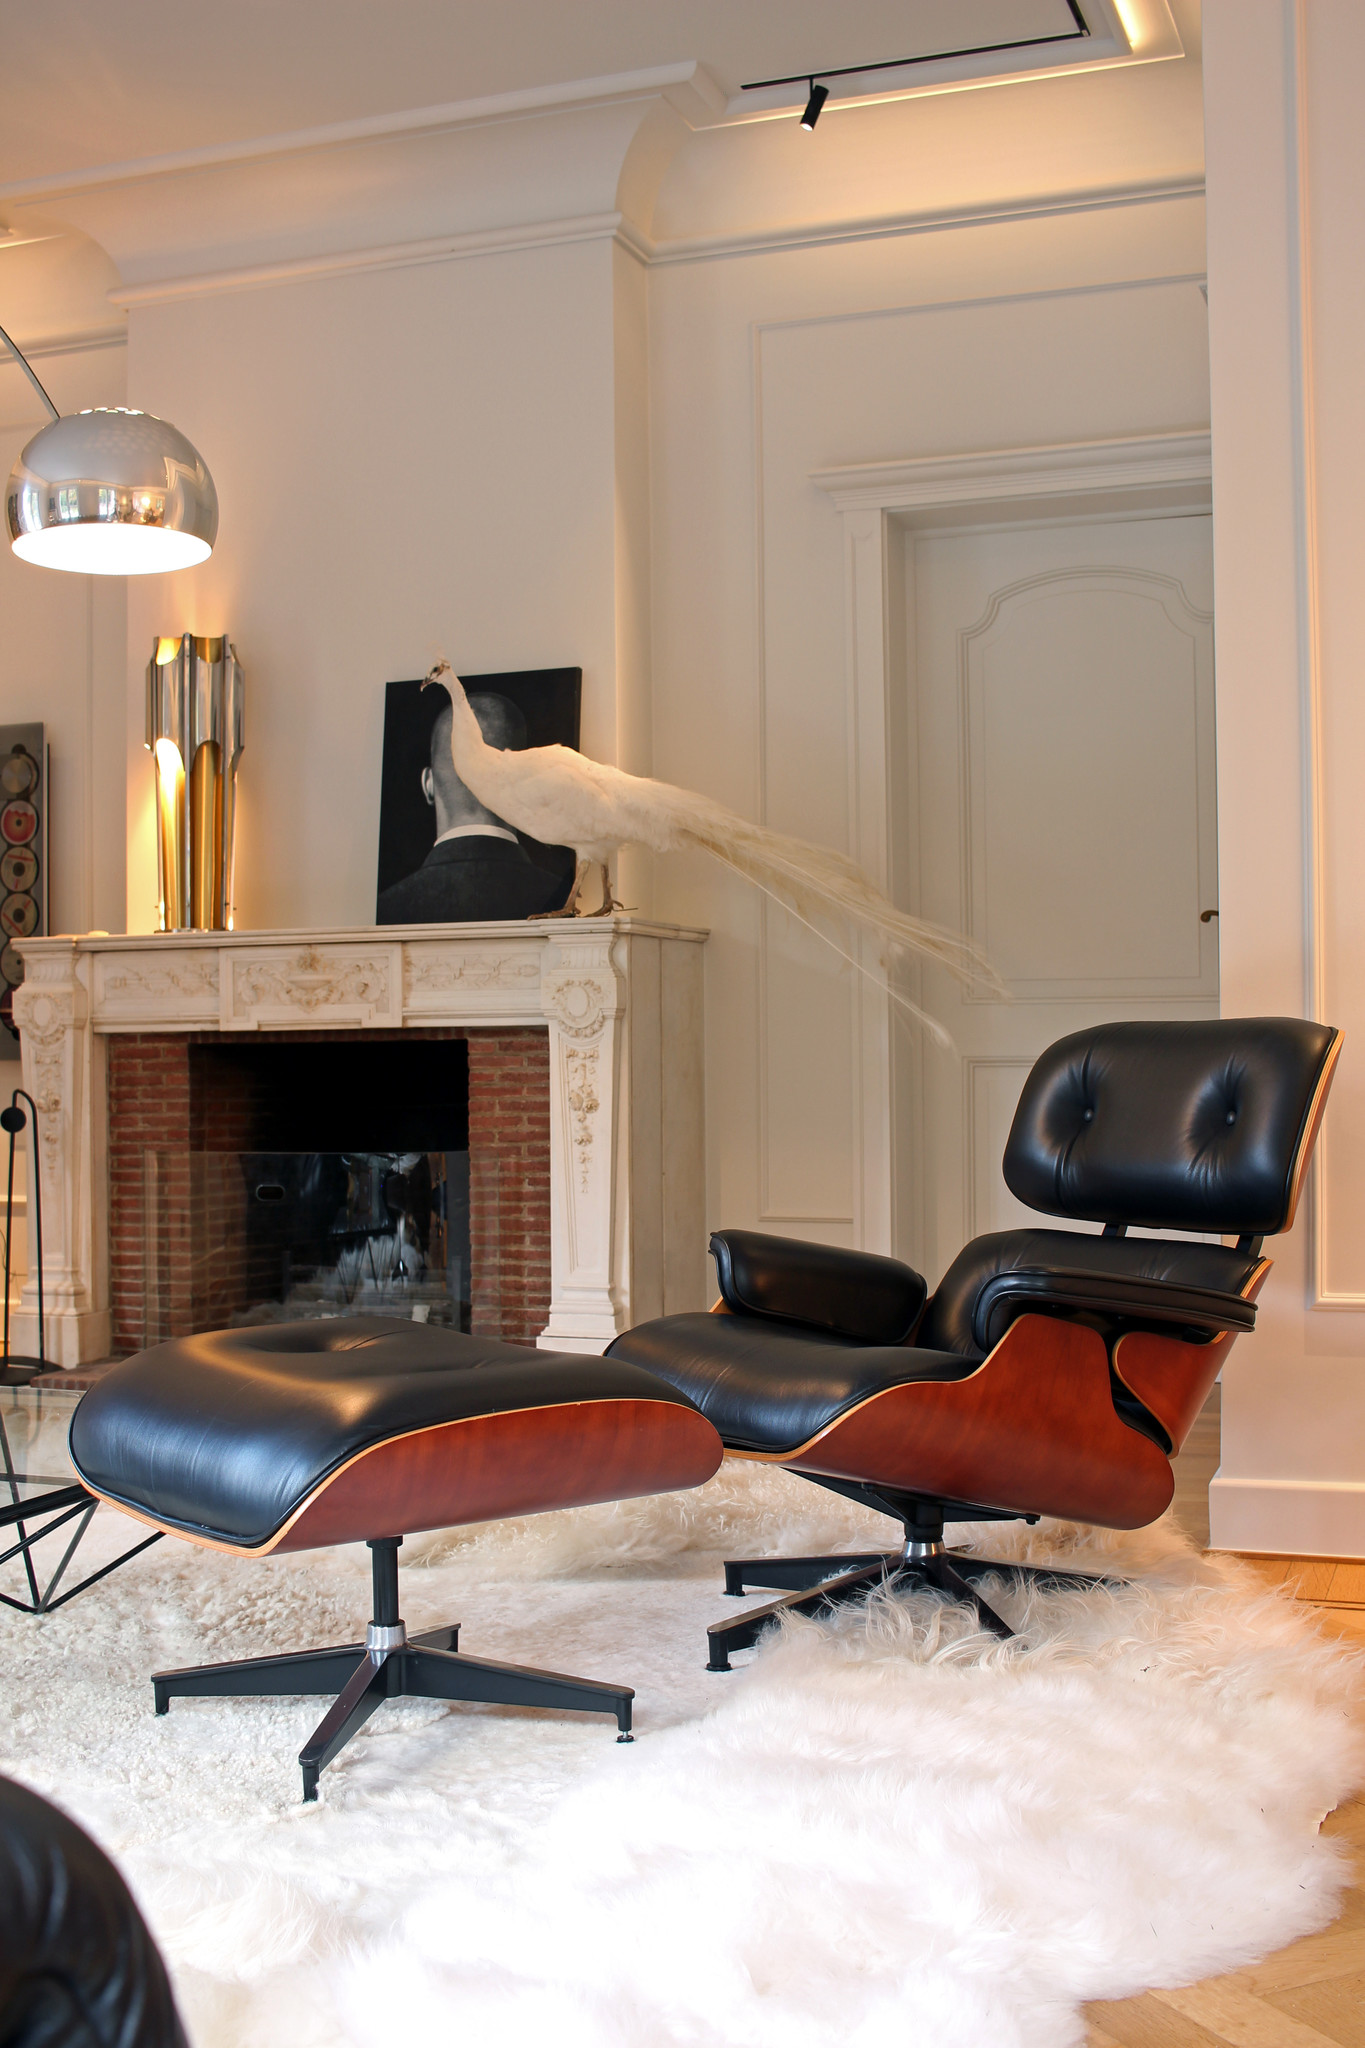 Charles Eames Lounge Chair for herman Miller